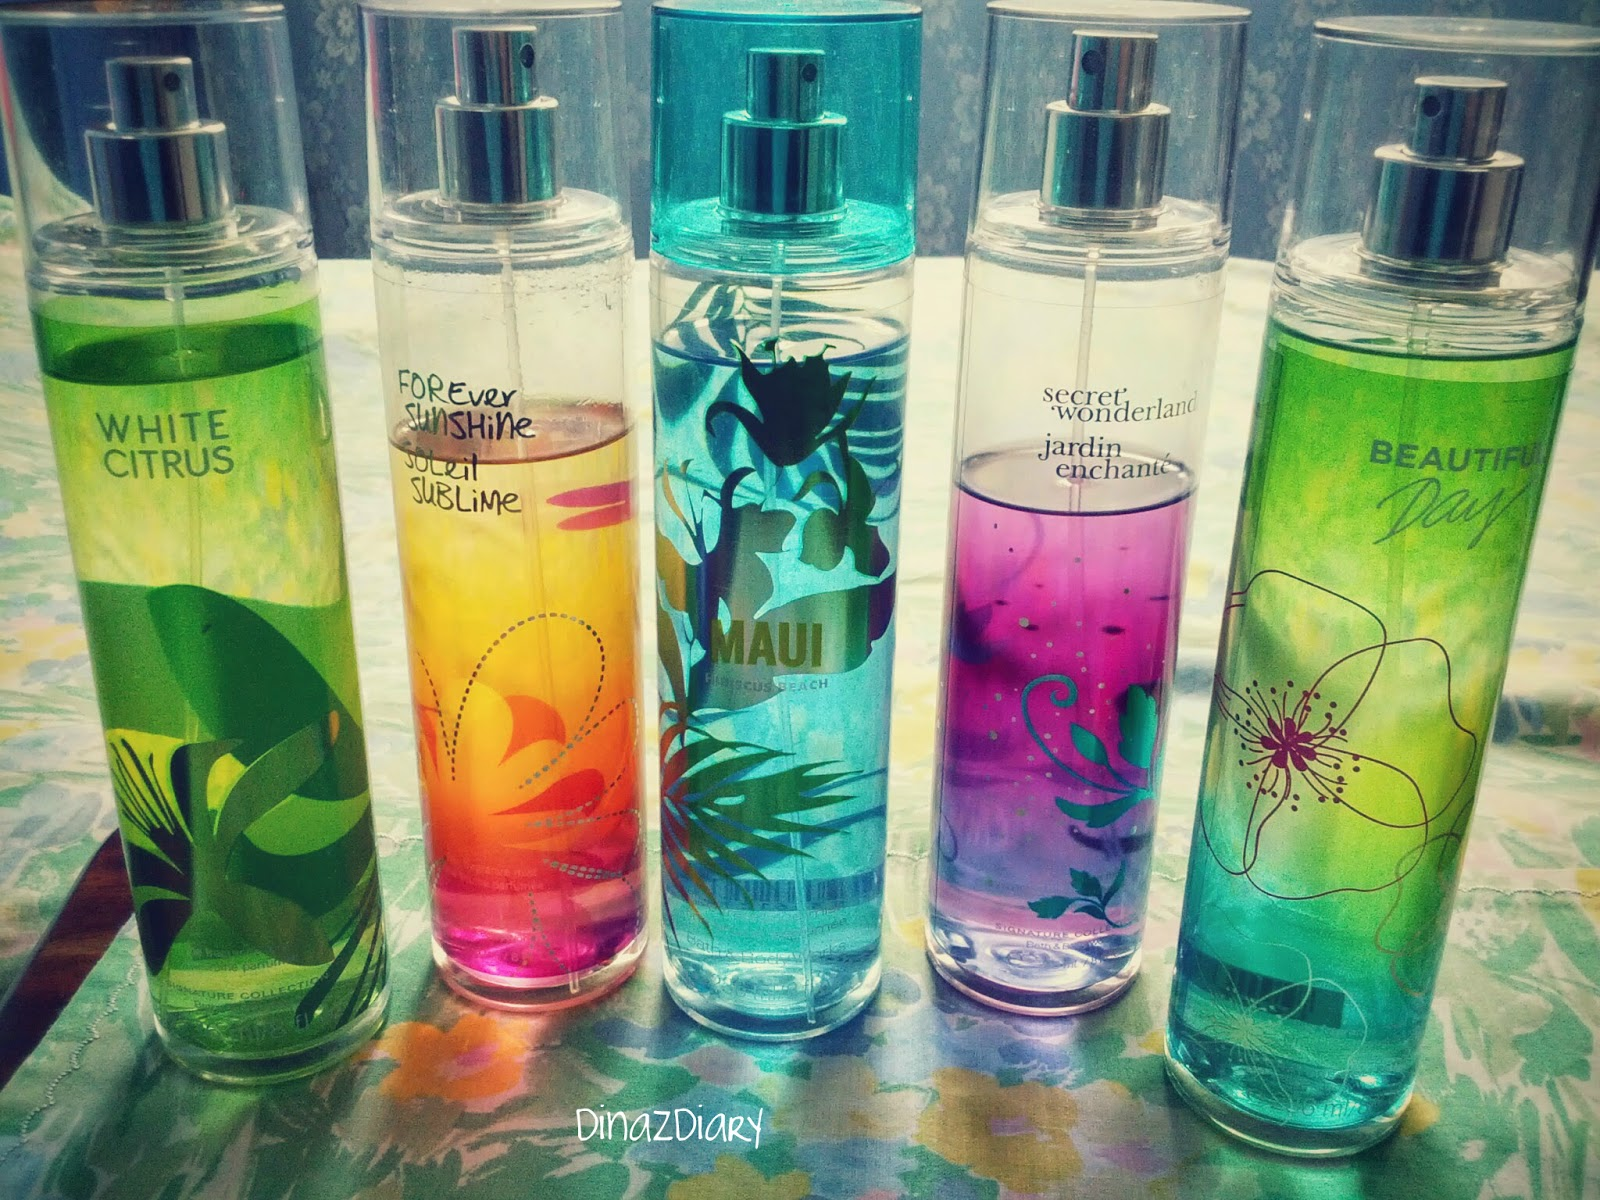 Dinazdiary Summer Scents Favourite Body Sprays